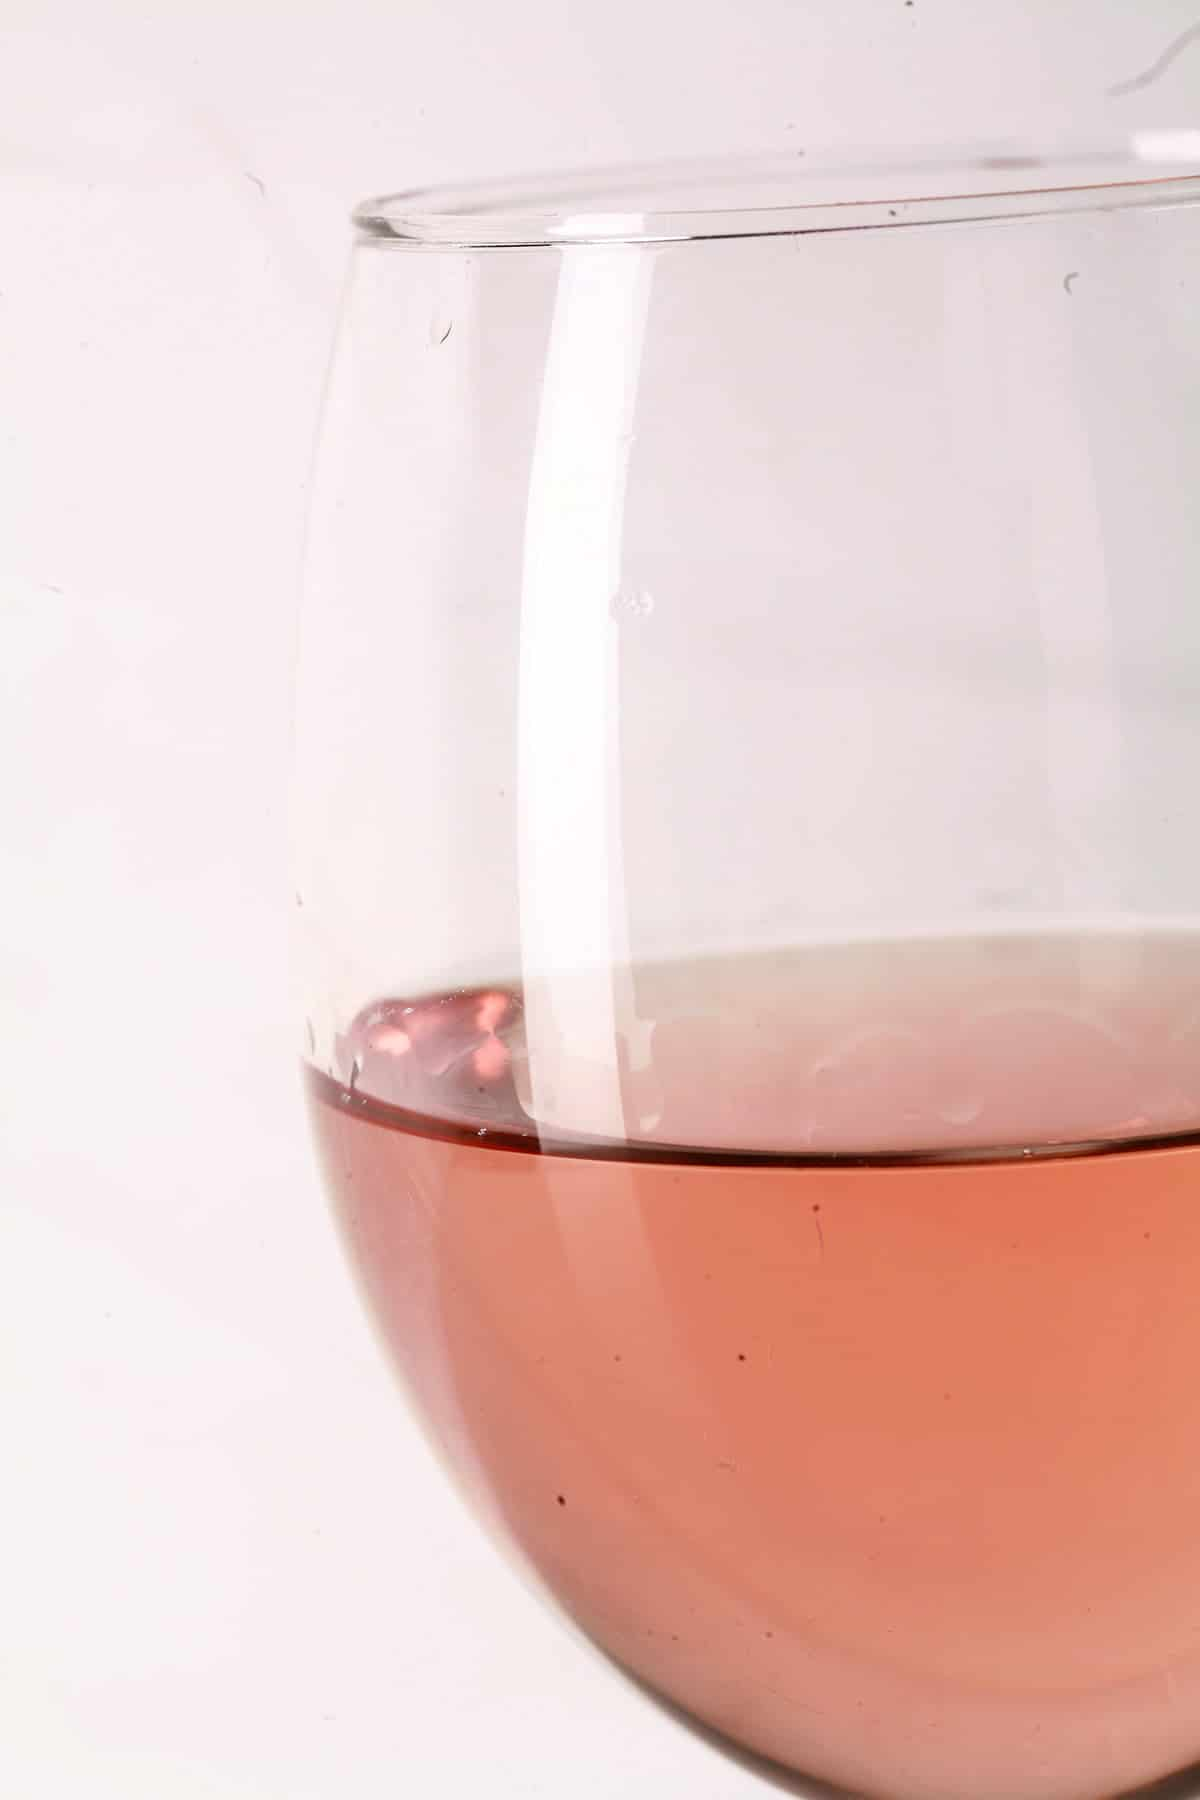 Close up view of a glass of mango strawberry wine.